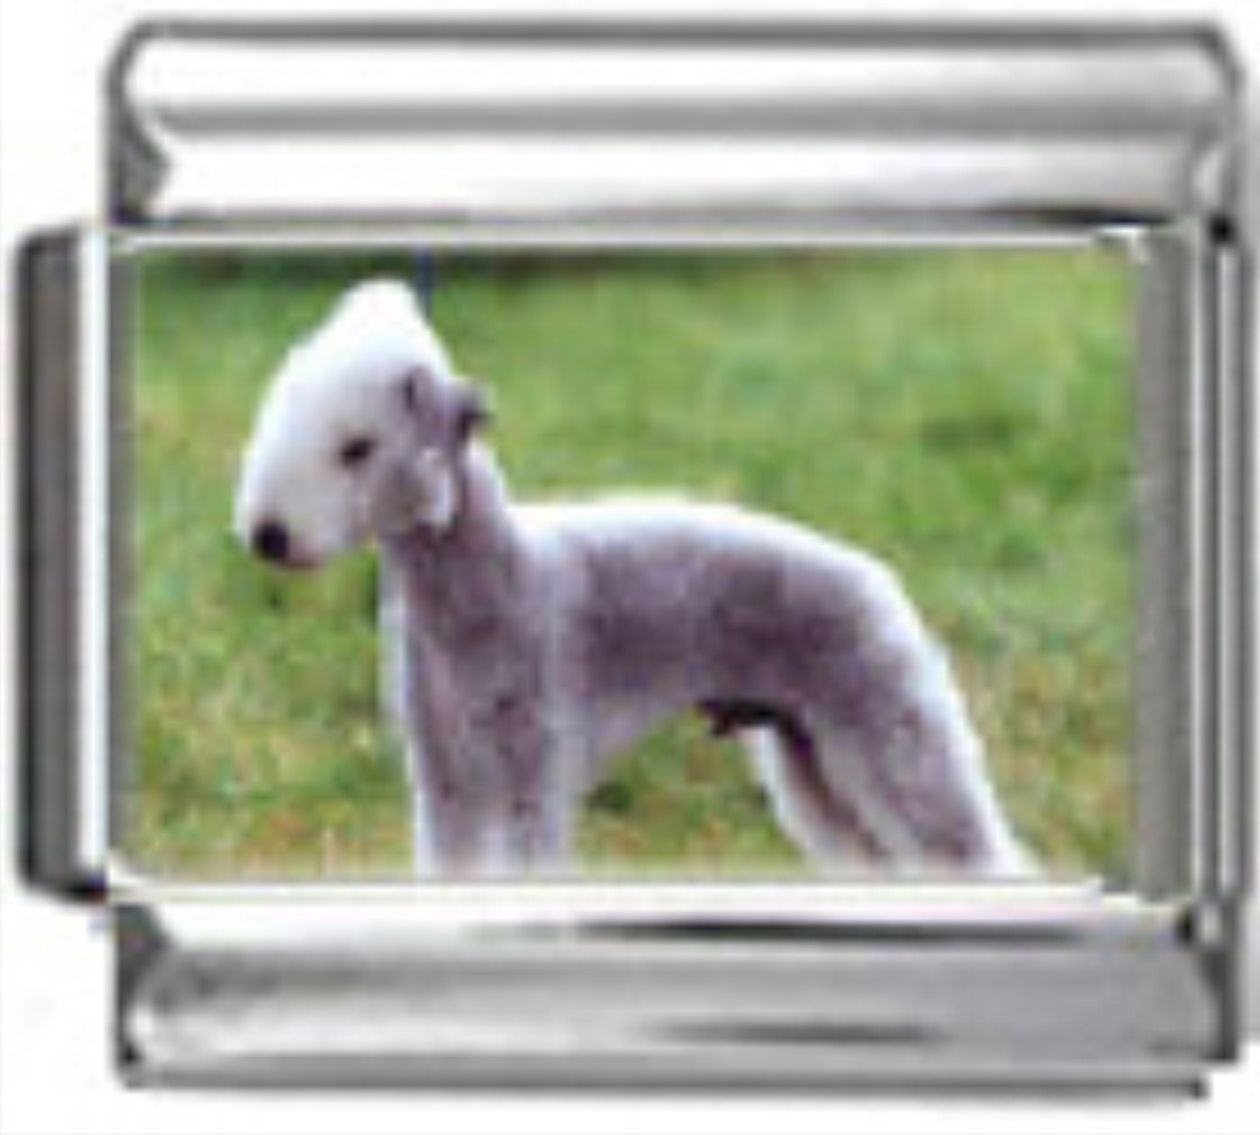 DG064-Bedlington-Terrier-Dog-2